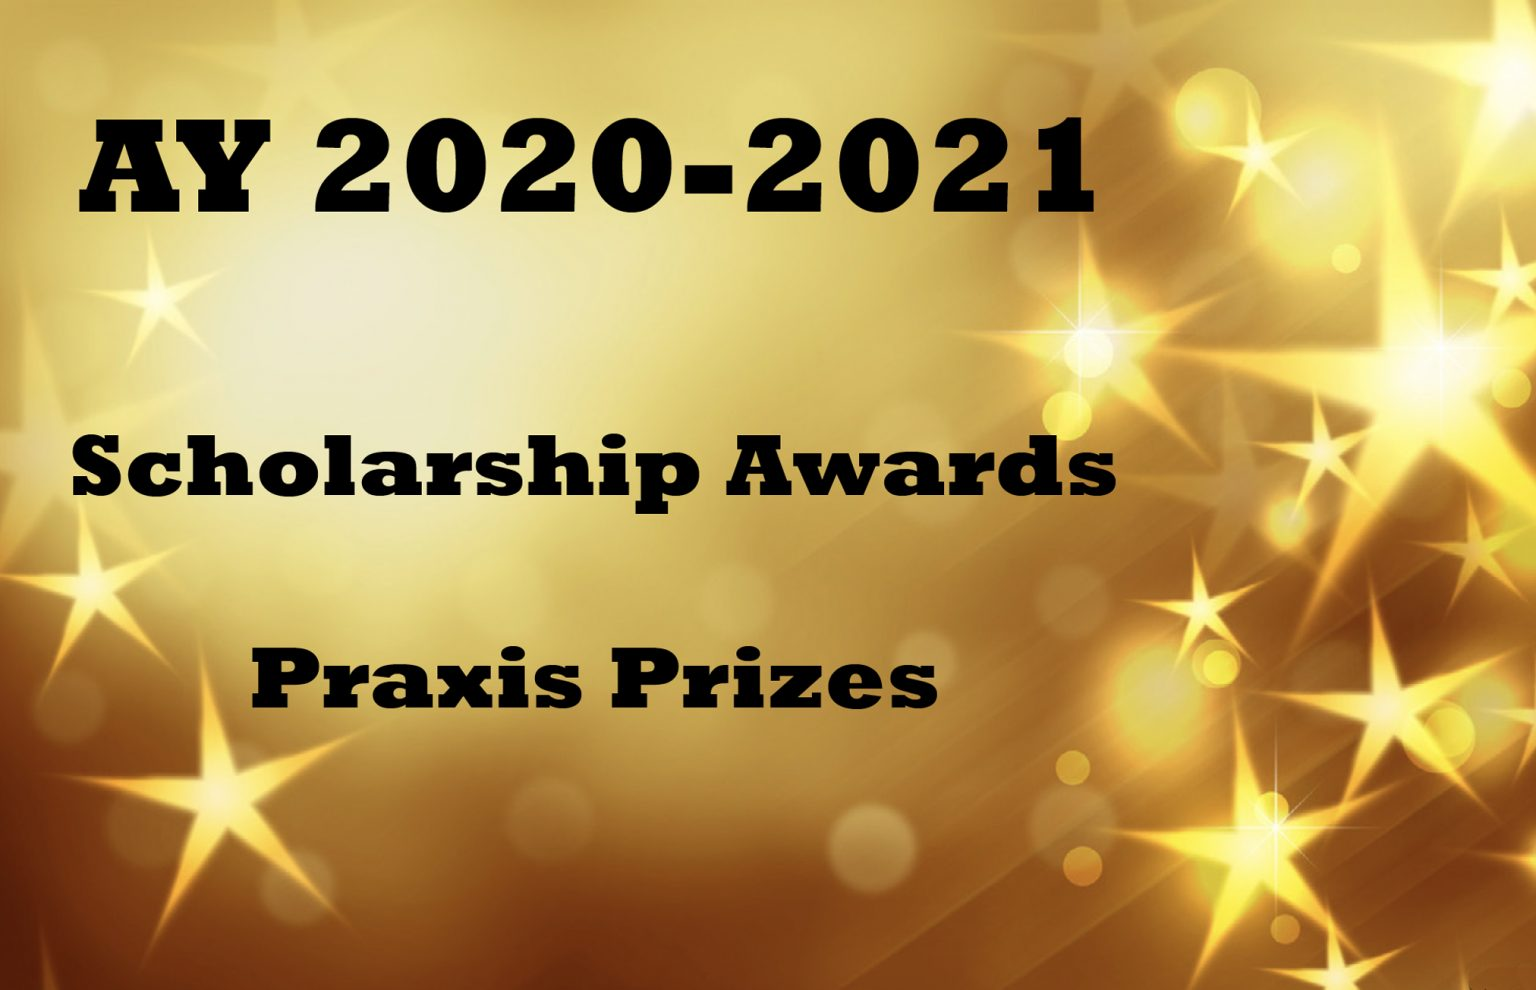 2020-2021 Scholarship Awards and Praxis Prizes